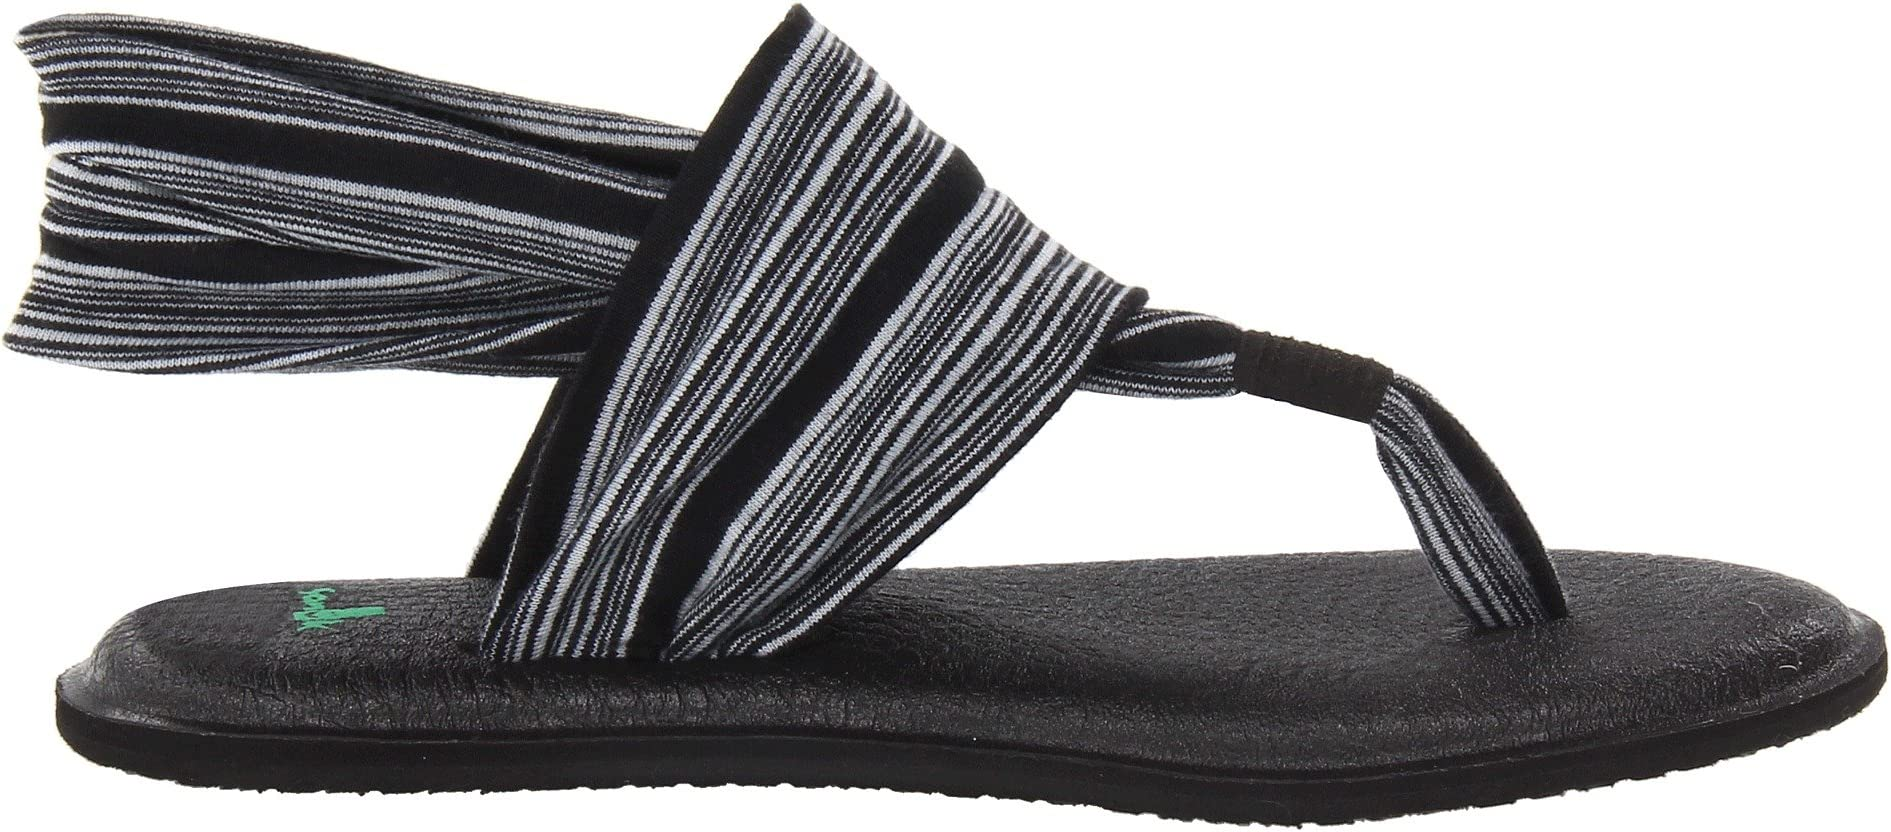 Sanuk Yoga Sling 2 | Women's shoes | 2020 Newest